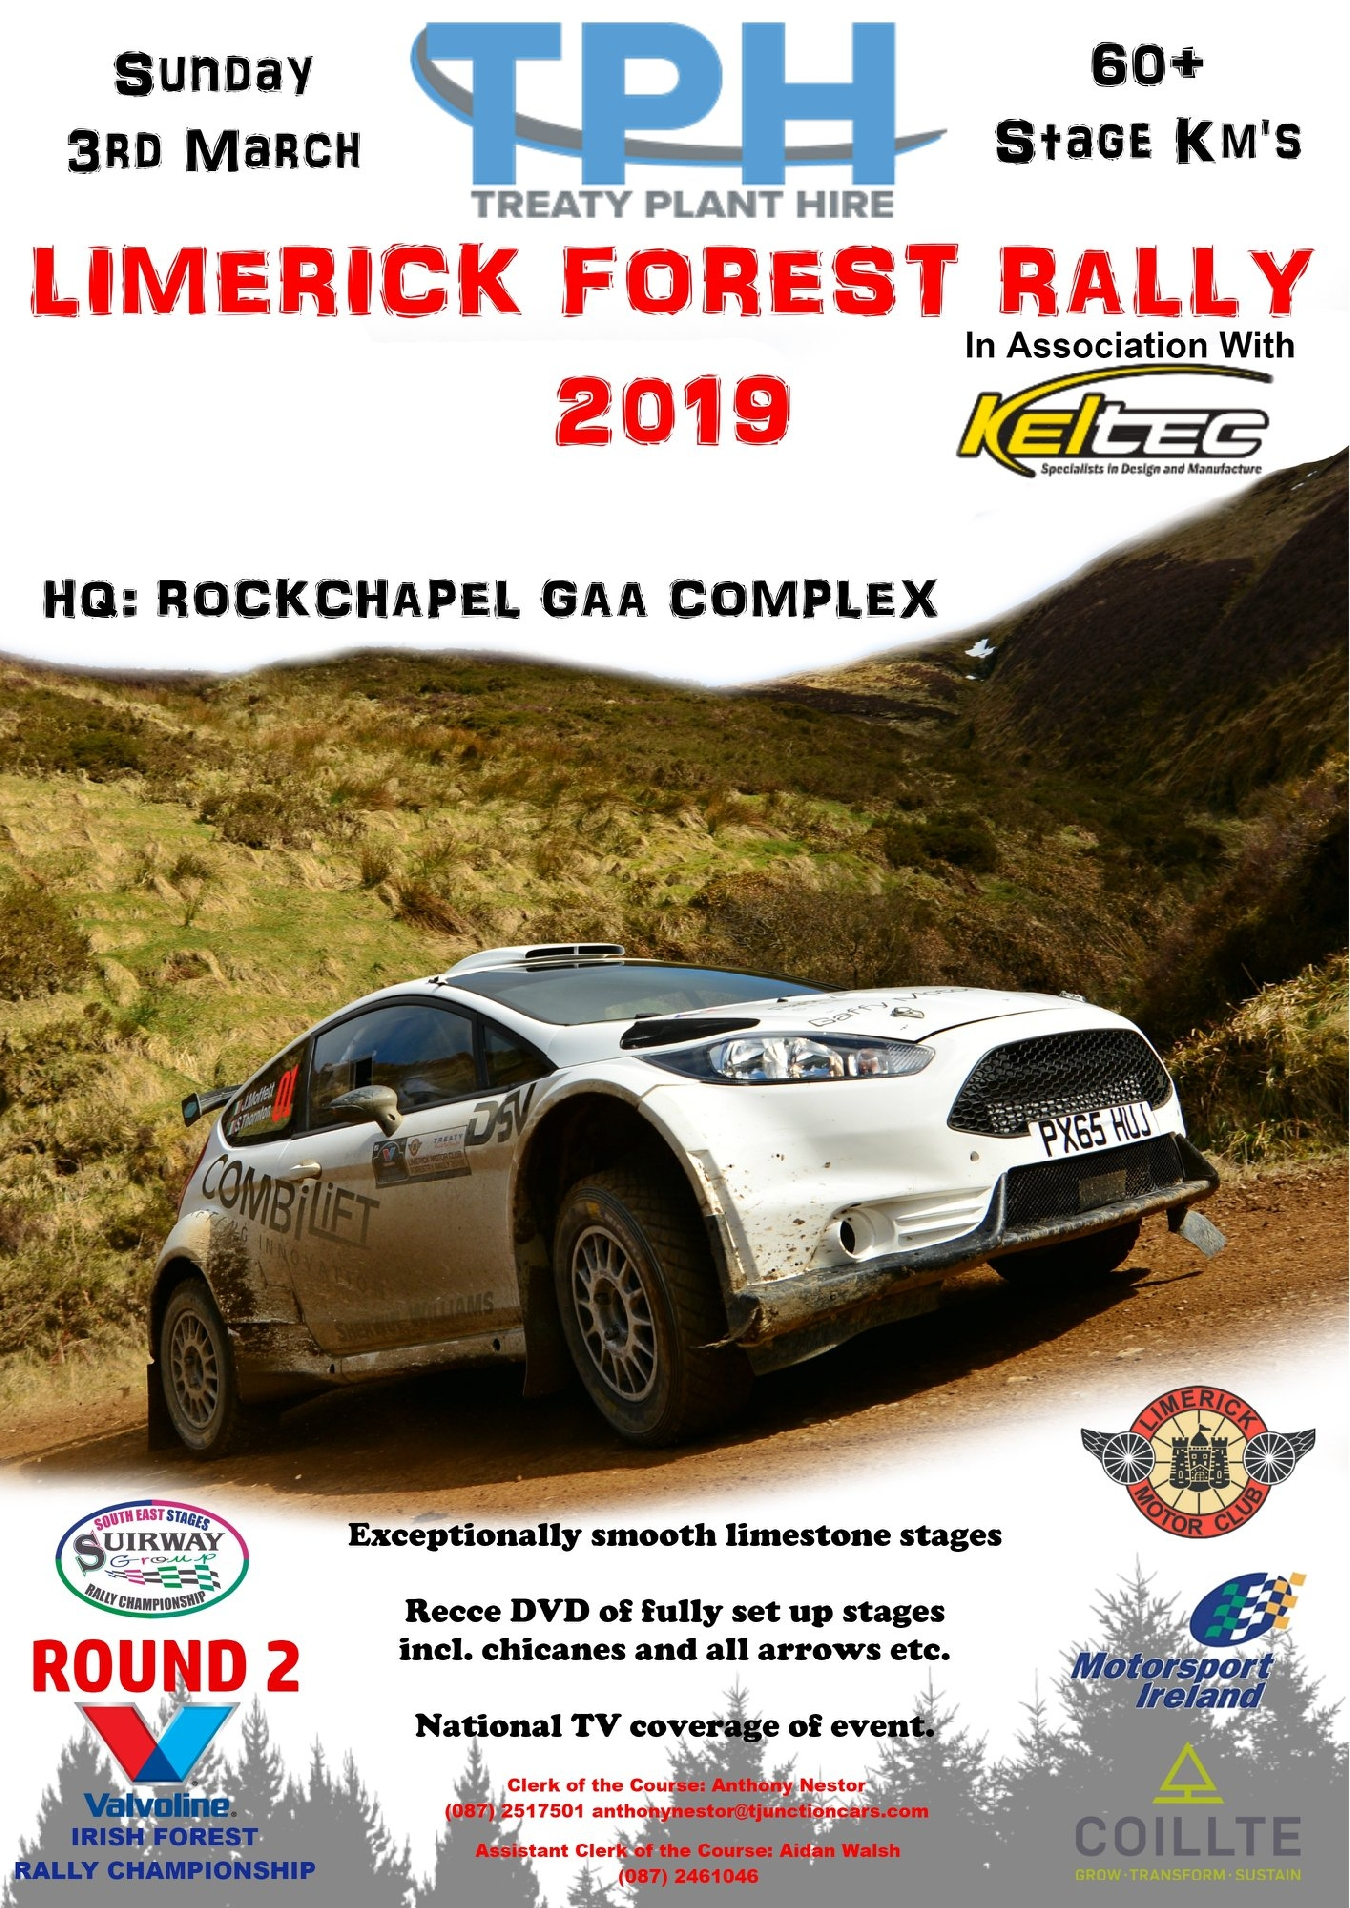 Round 2 2019 Limerick Forest Rally